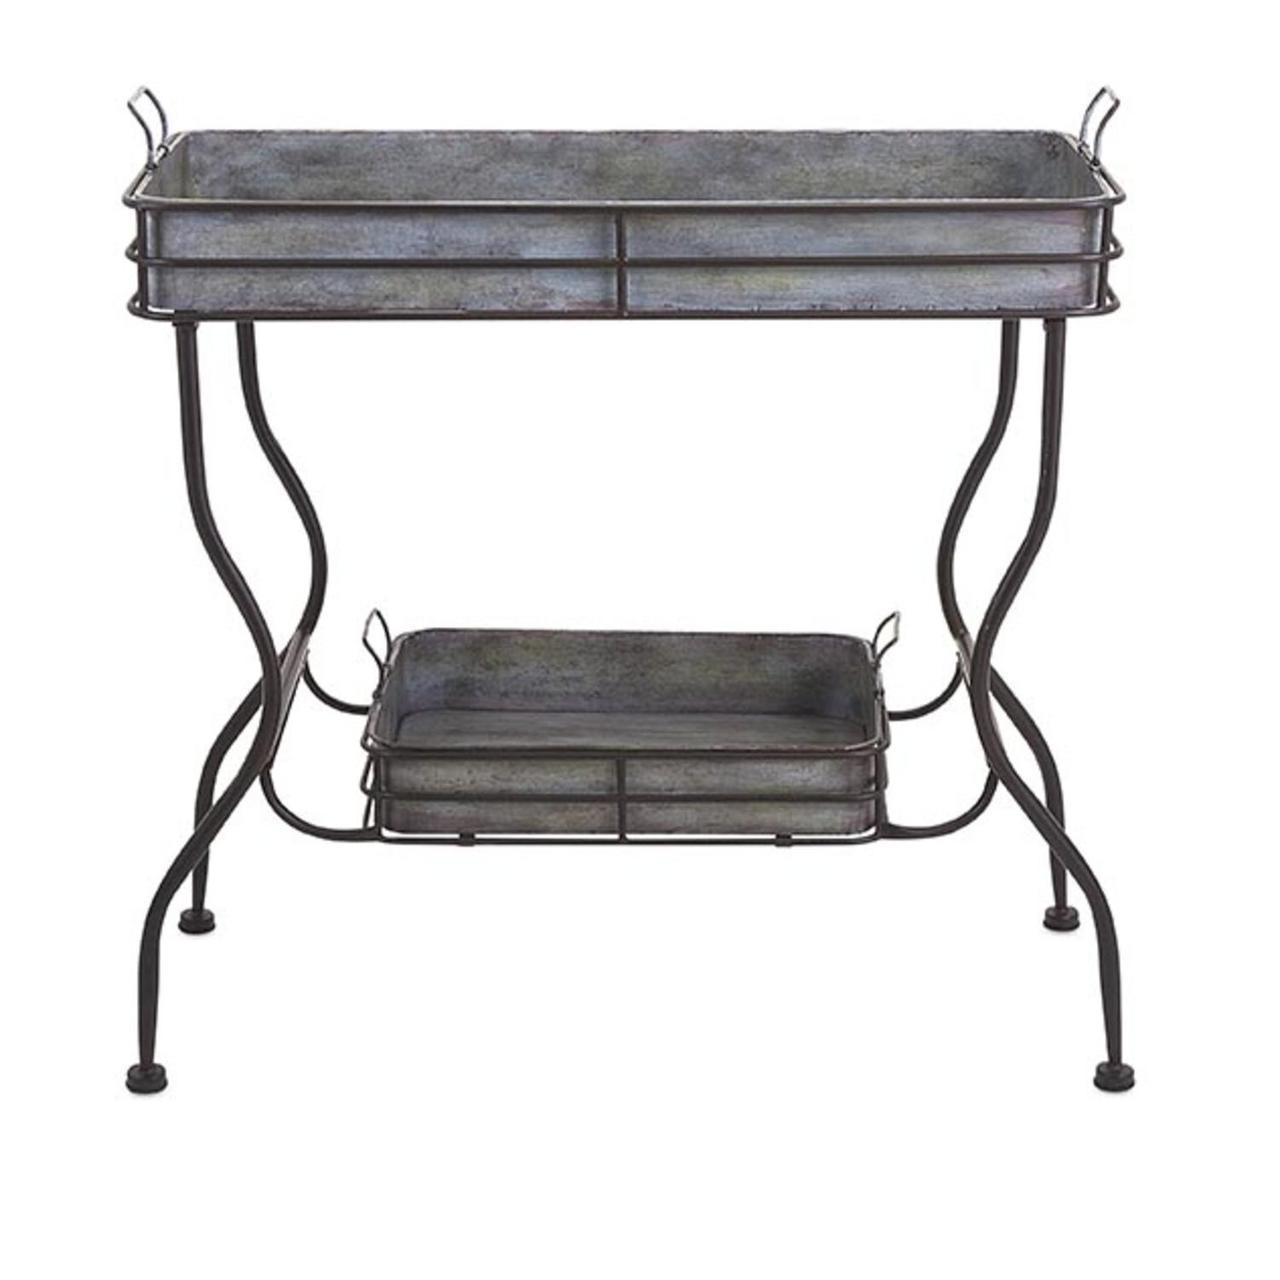 rustic silver galvanized metal accent table with removable serving trays green cabinet red dining room centerpiece ideas home interior accessories small side coffee barn style